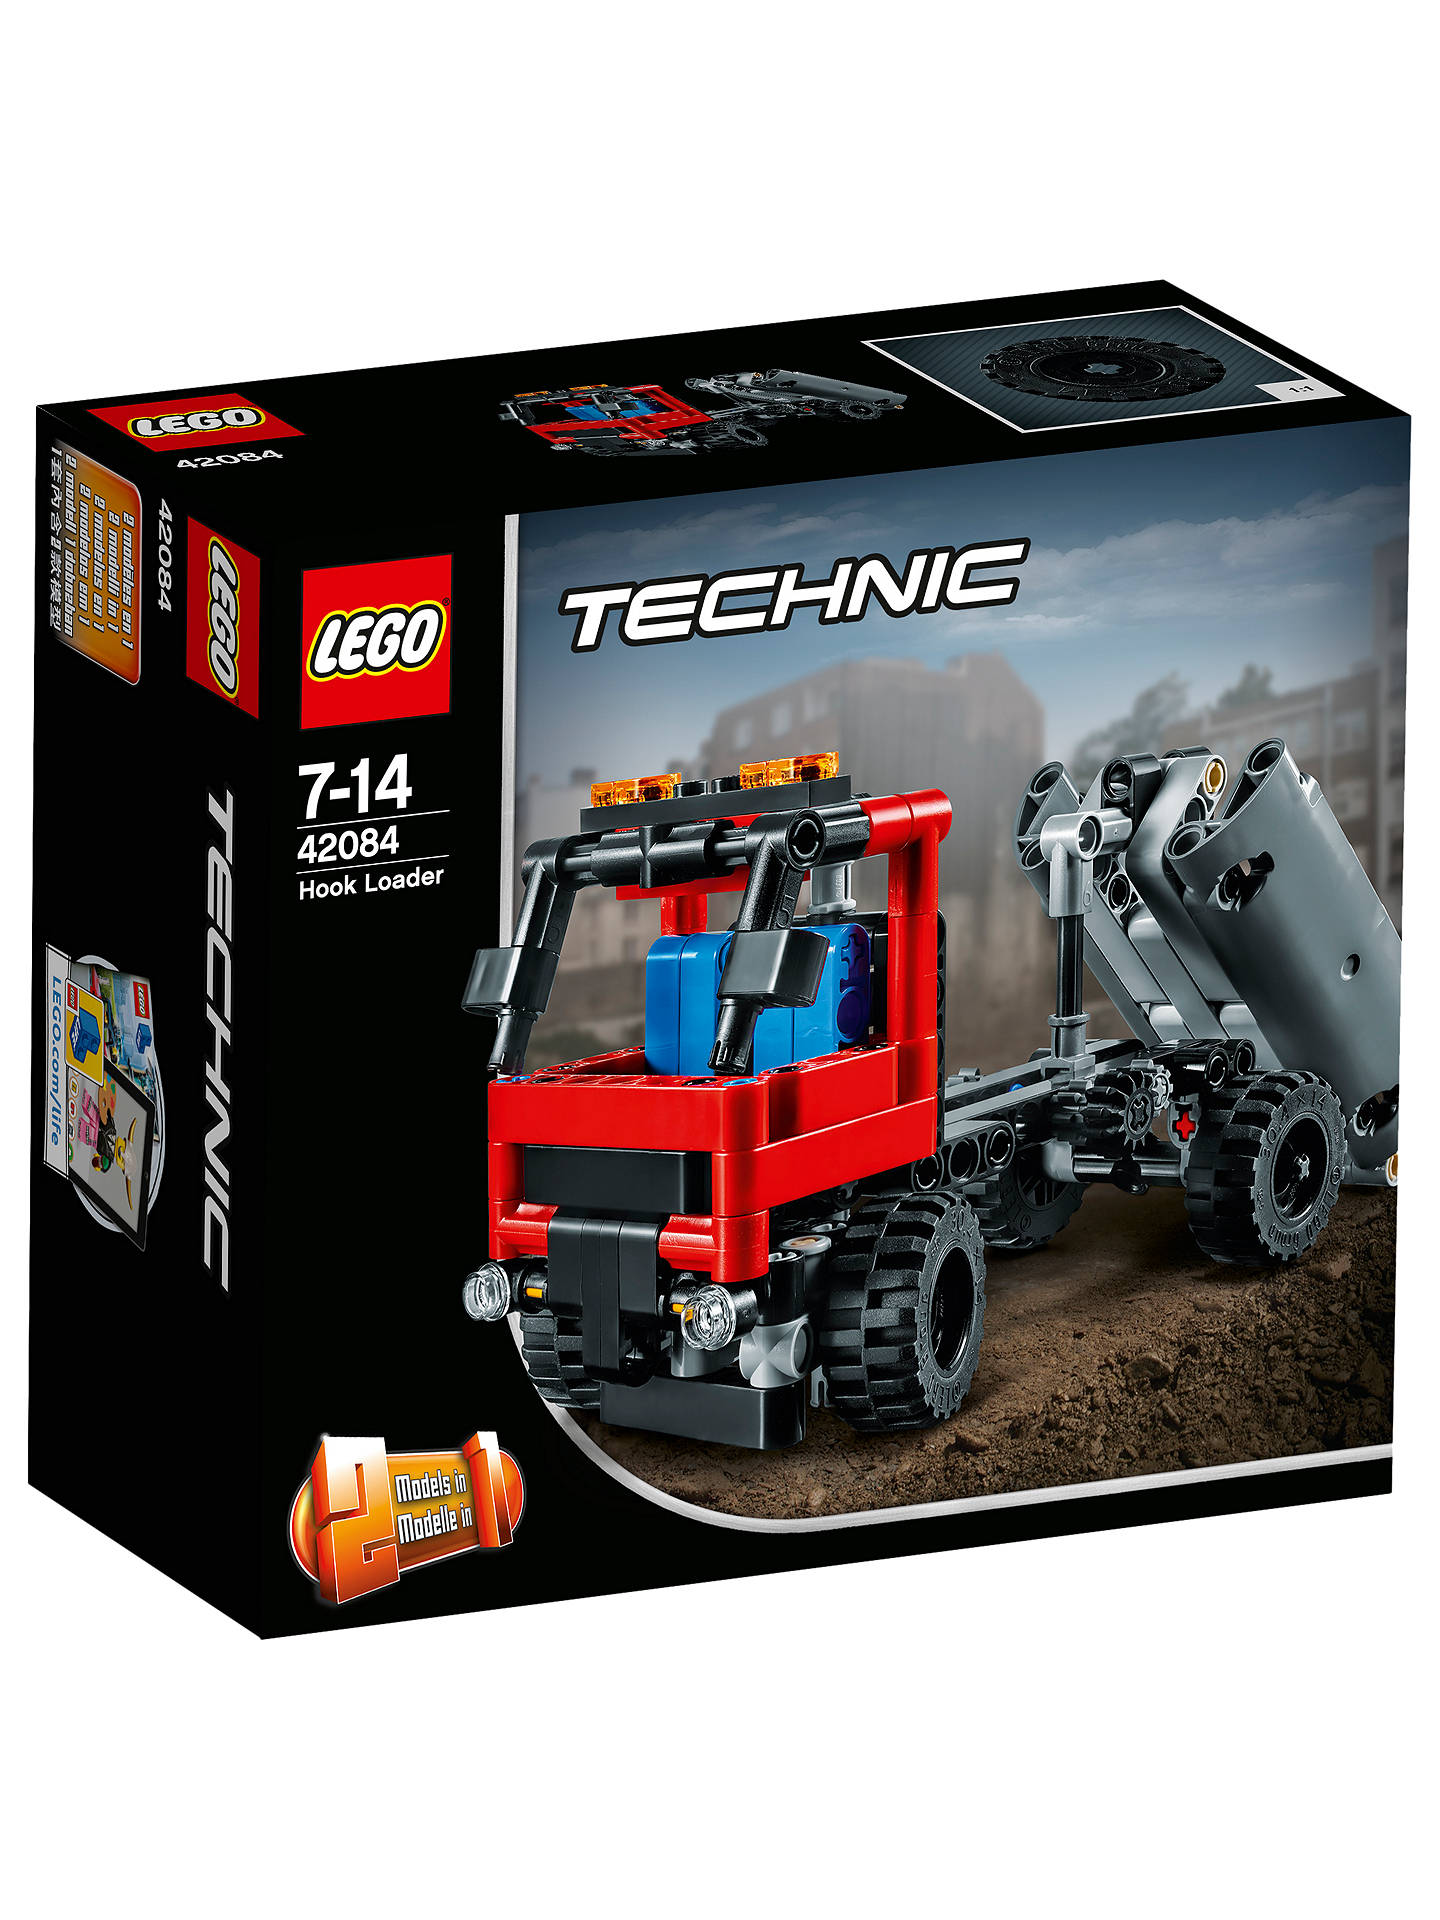 Lego Technic 42084 2 In 1 Hook Loader At John Lewis Partners